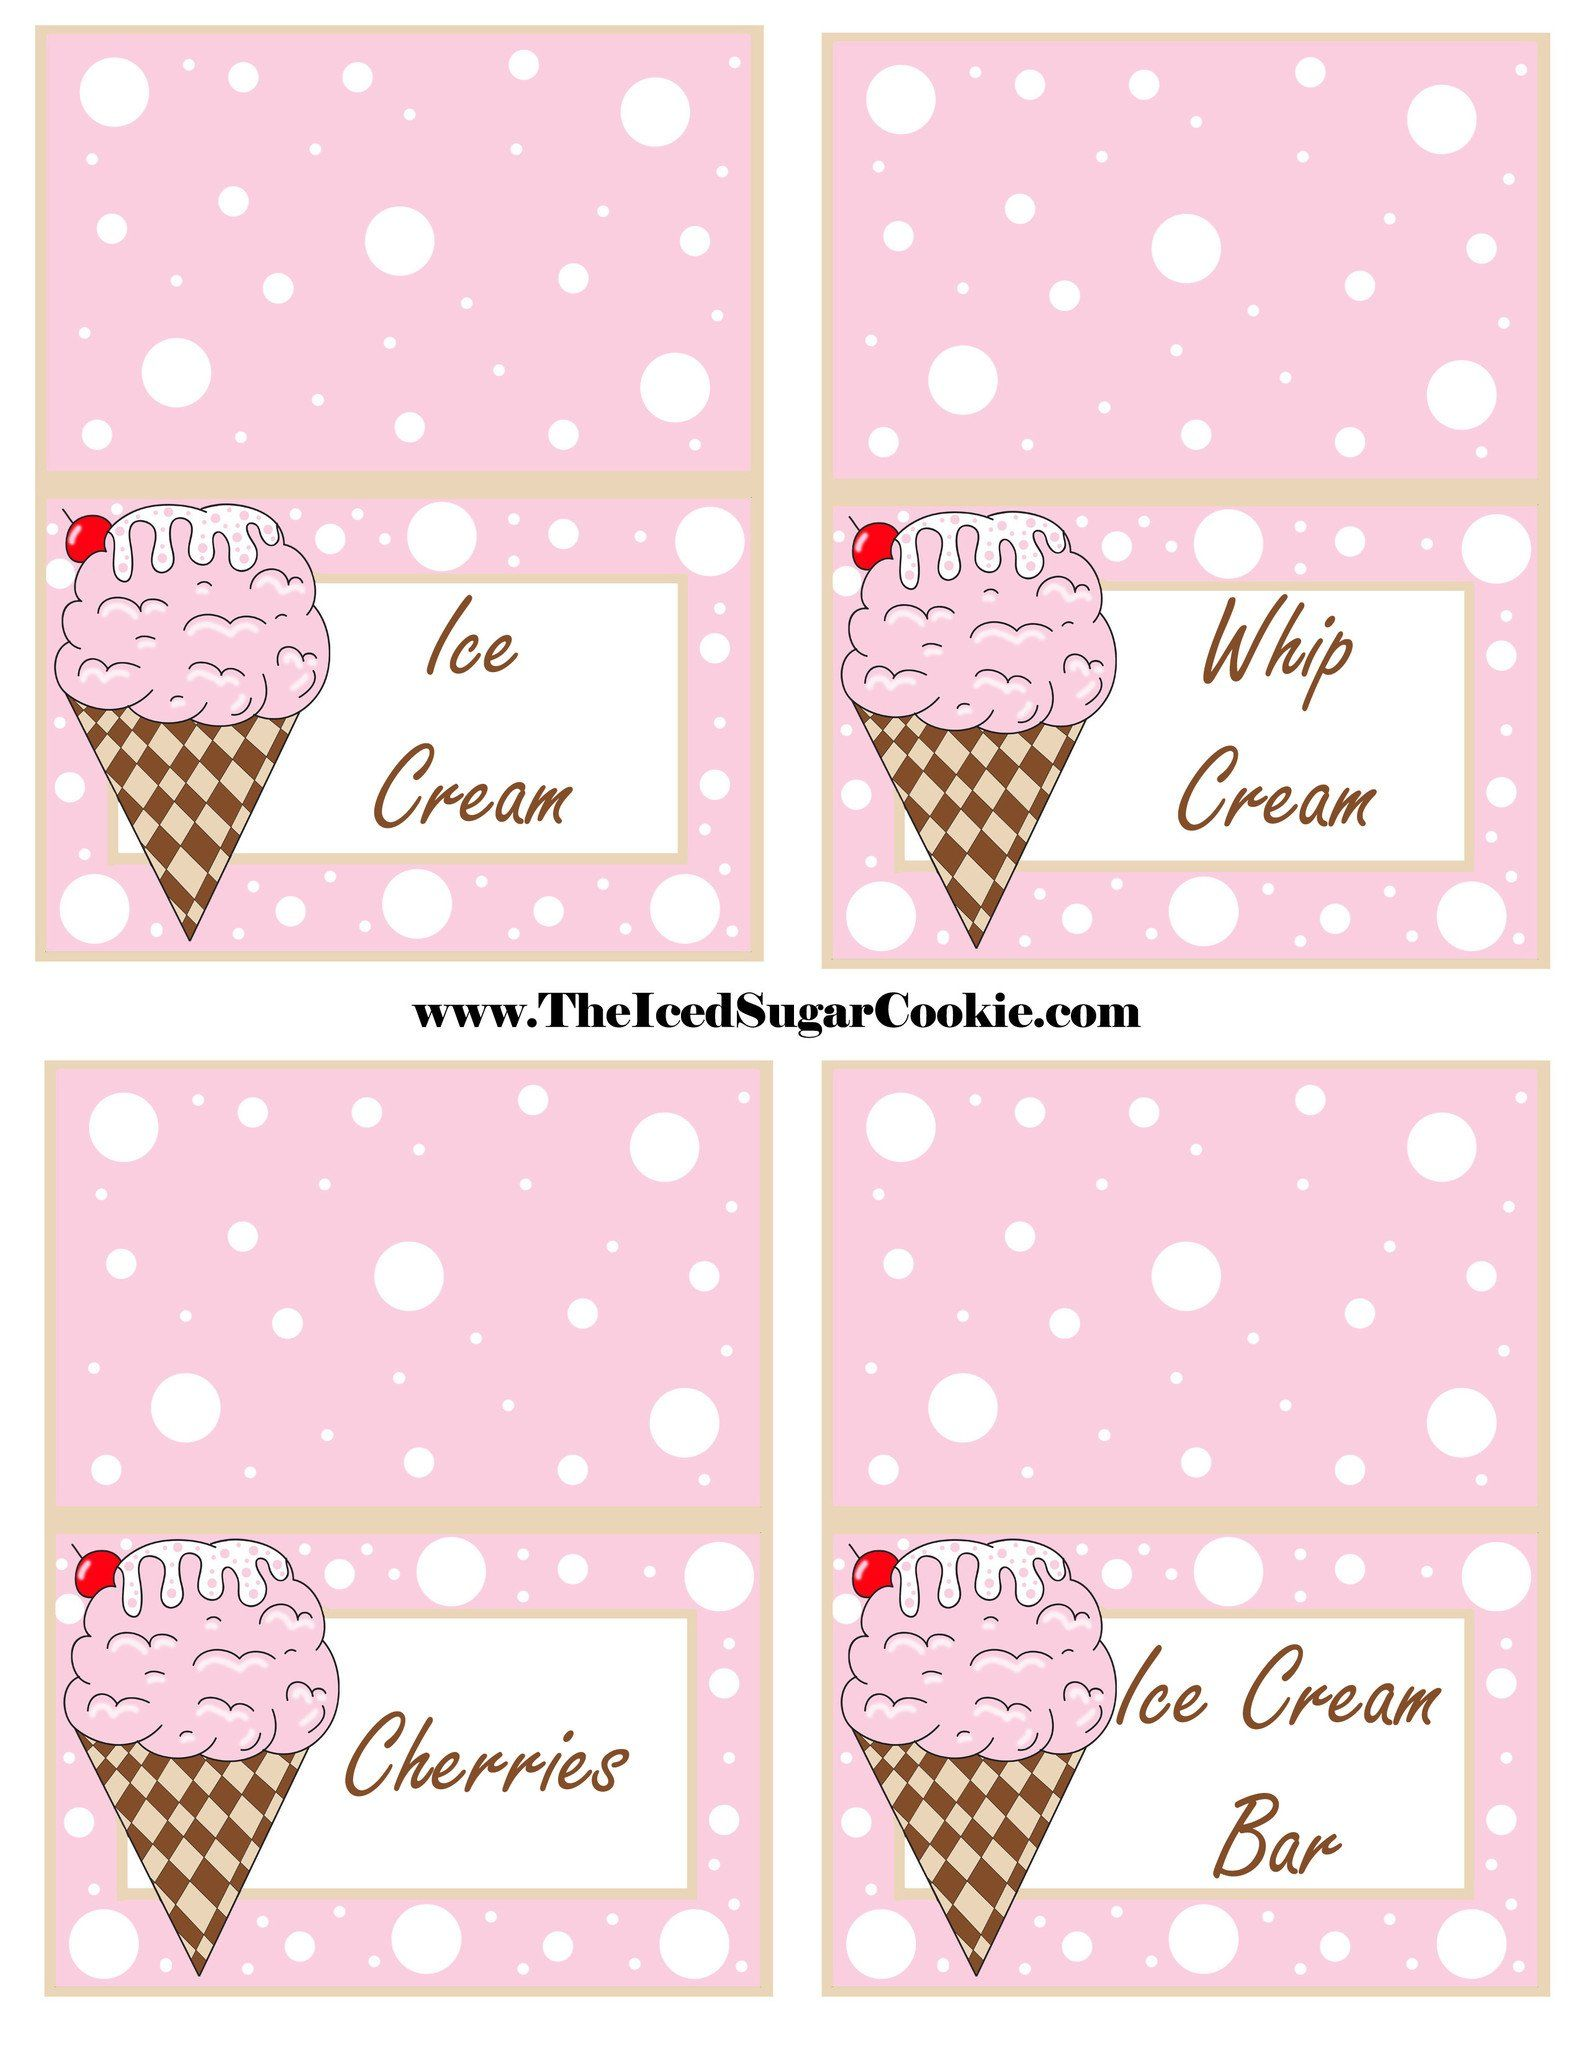 ice cream birthday party free printable template pattern cutout banner flag bunting garland